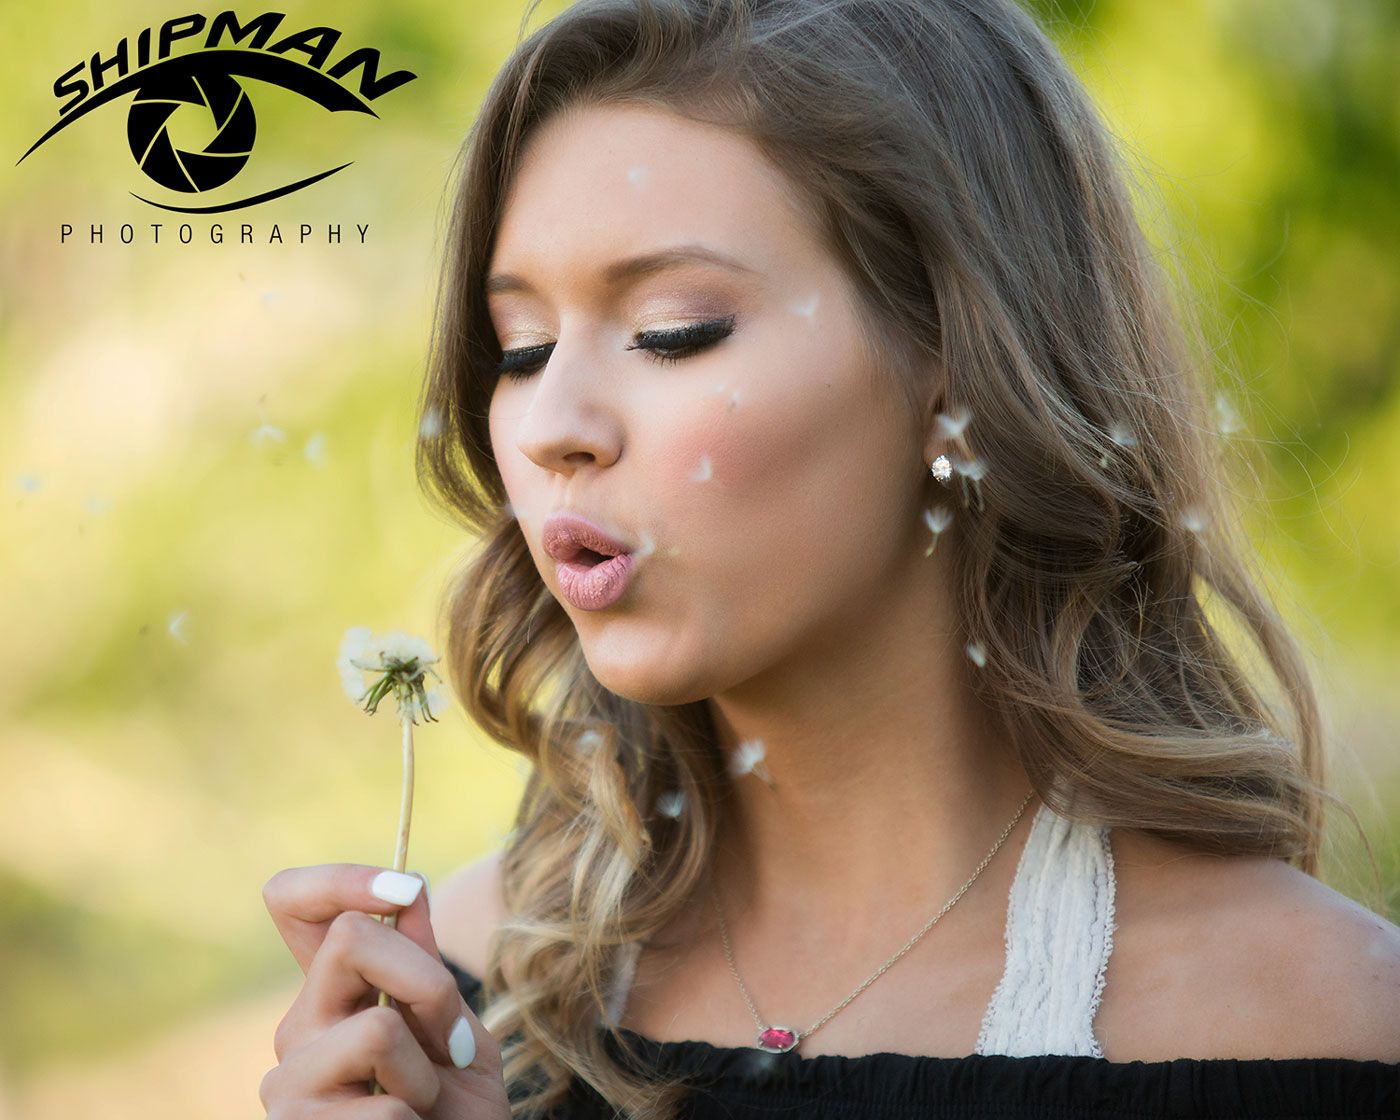 natural light senior portrait of a girl blowing a dandelion